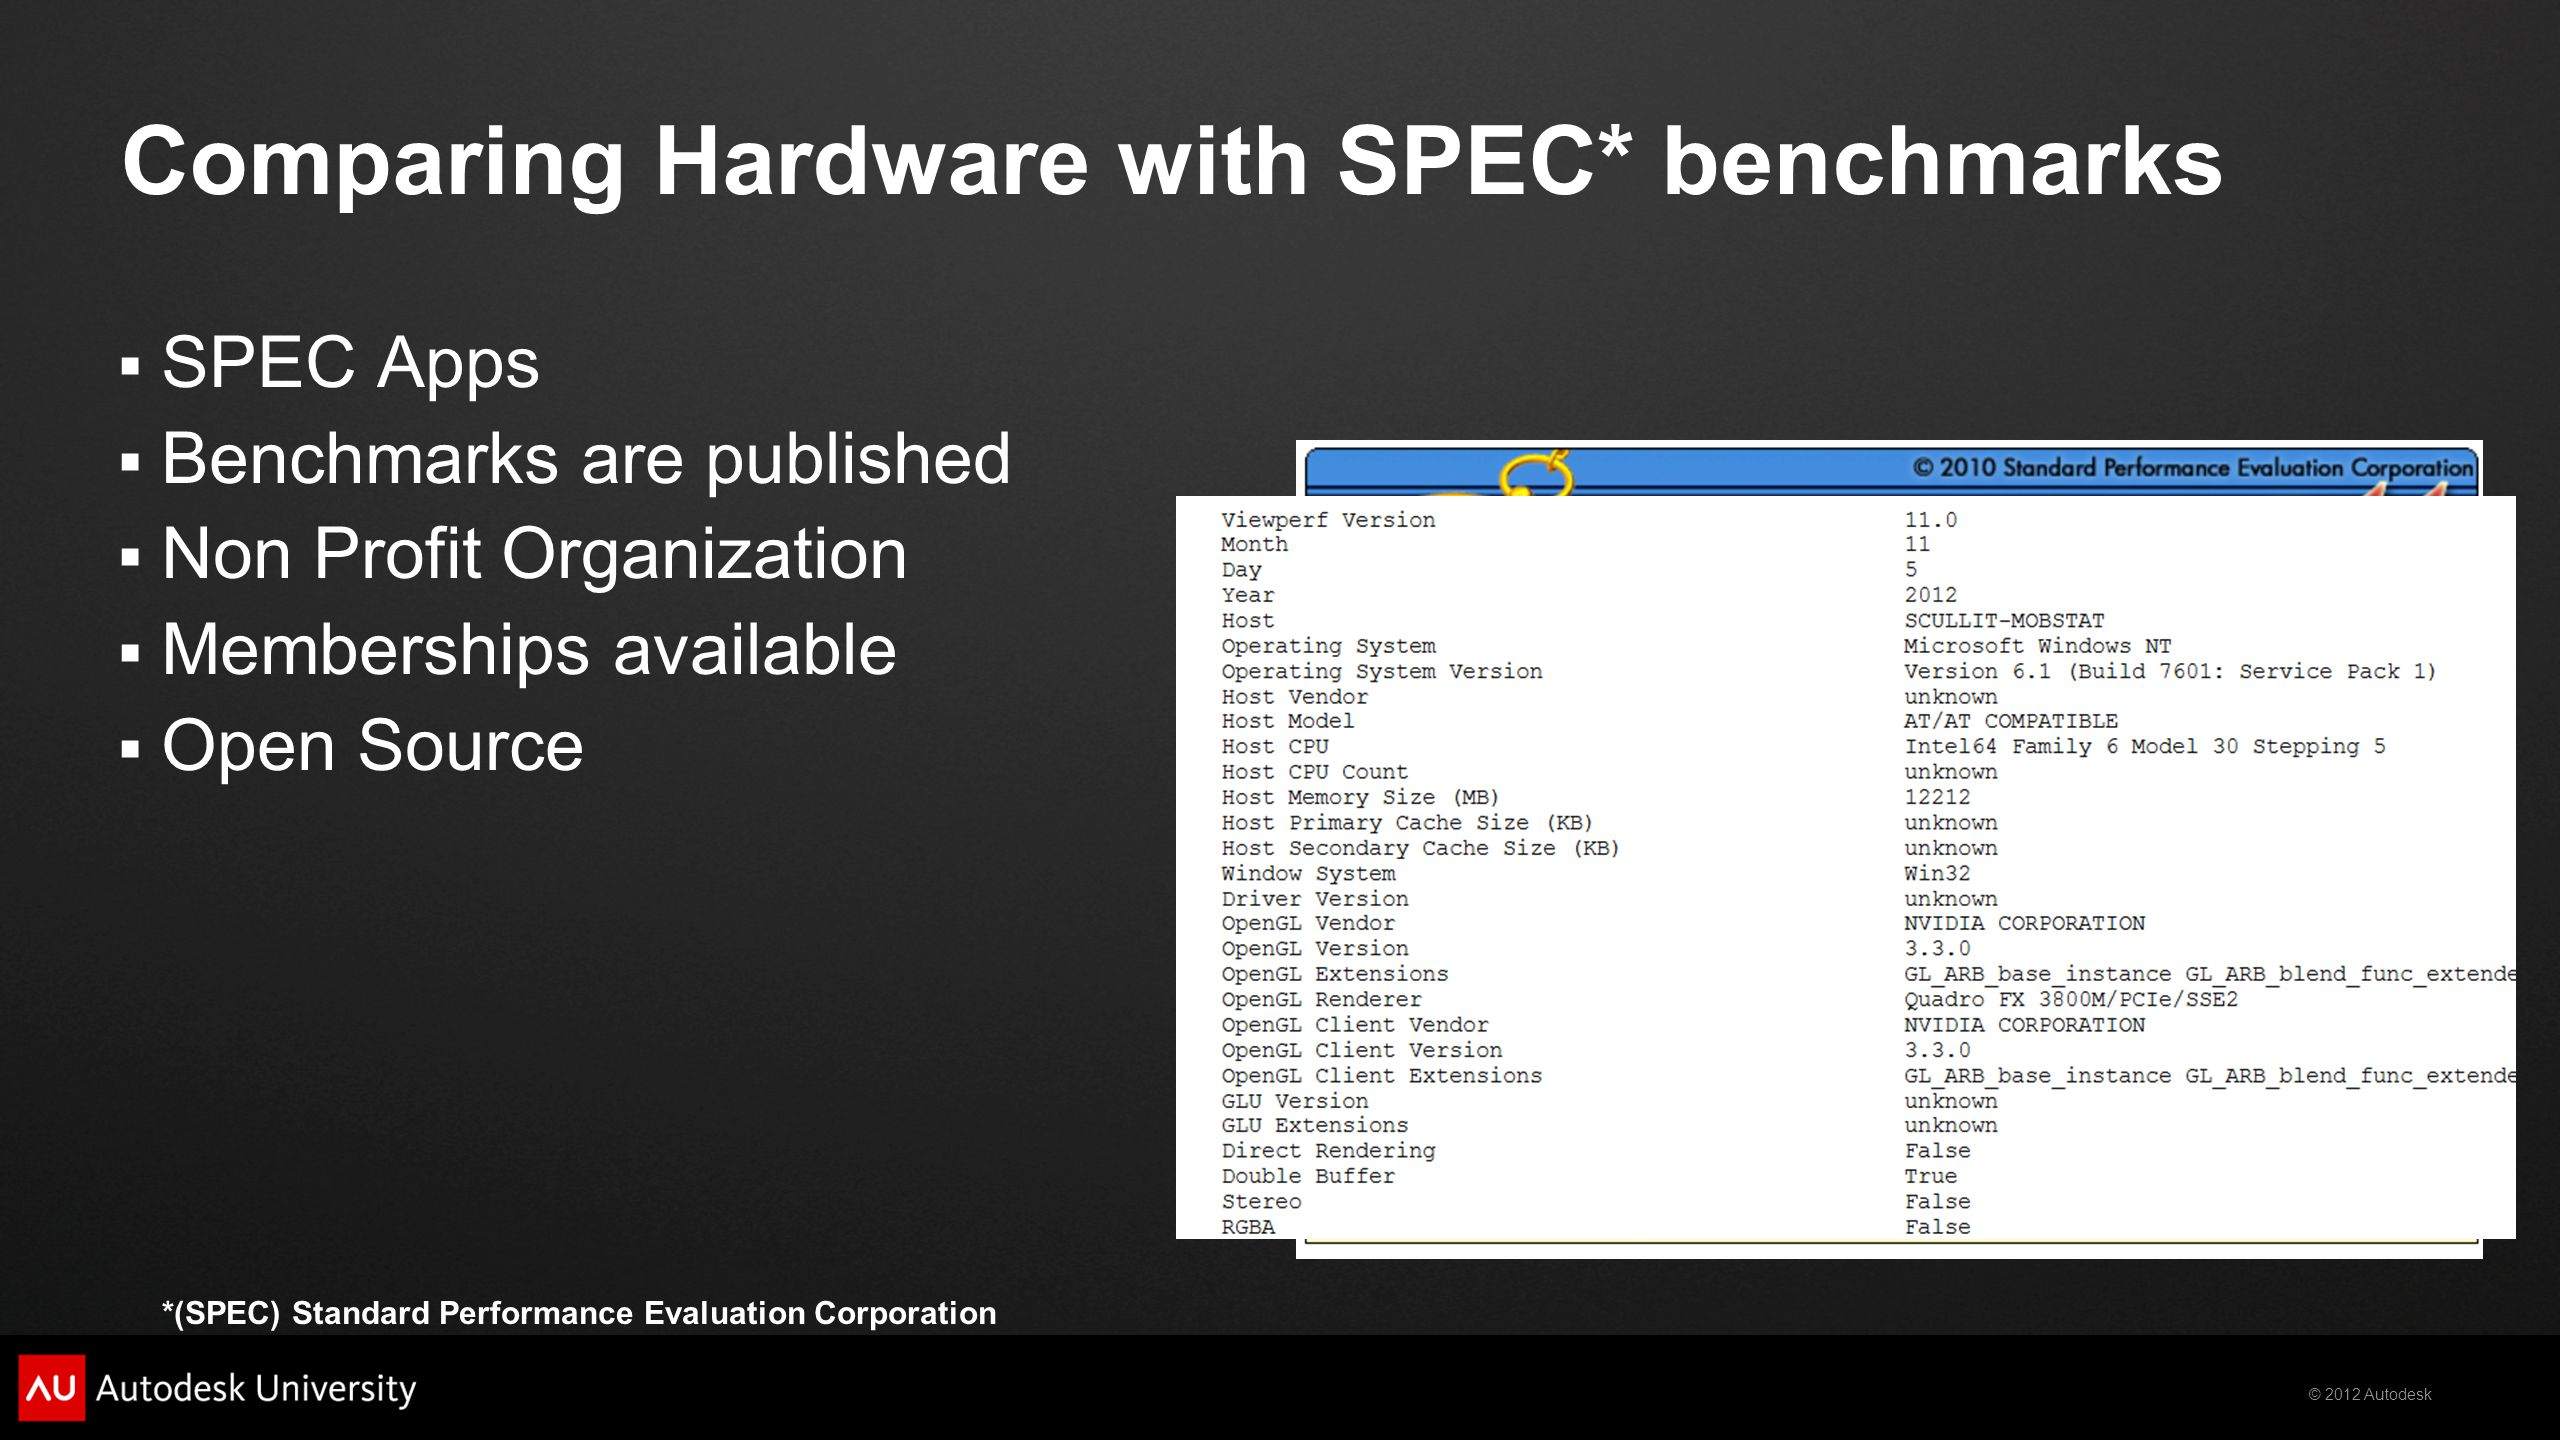 Comparing Hardware with SPEC* benchmarks